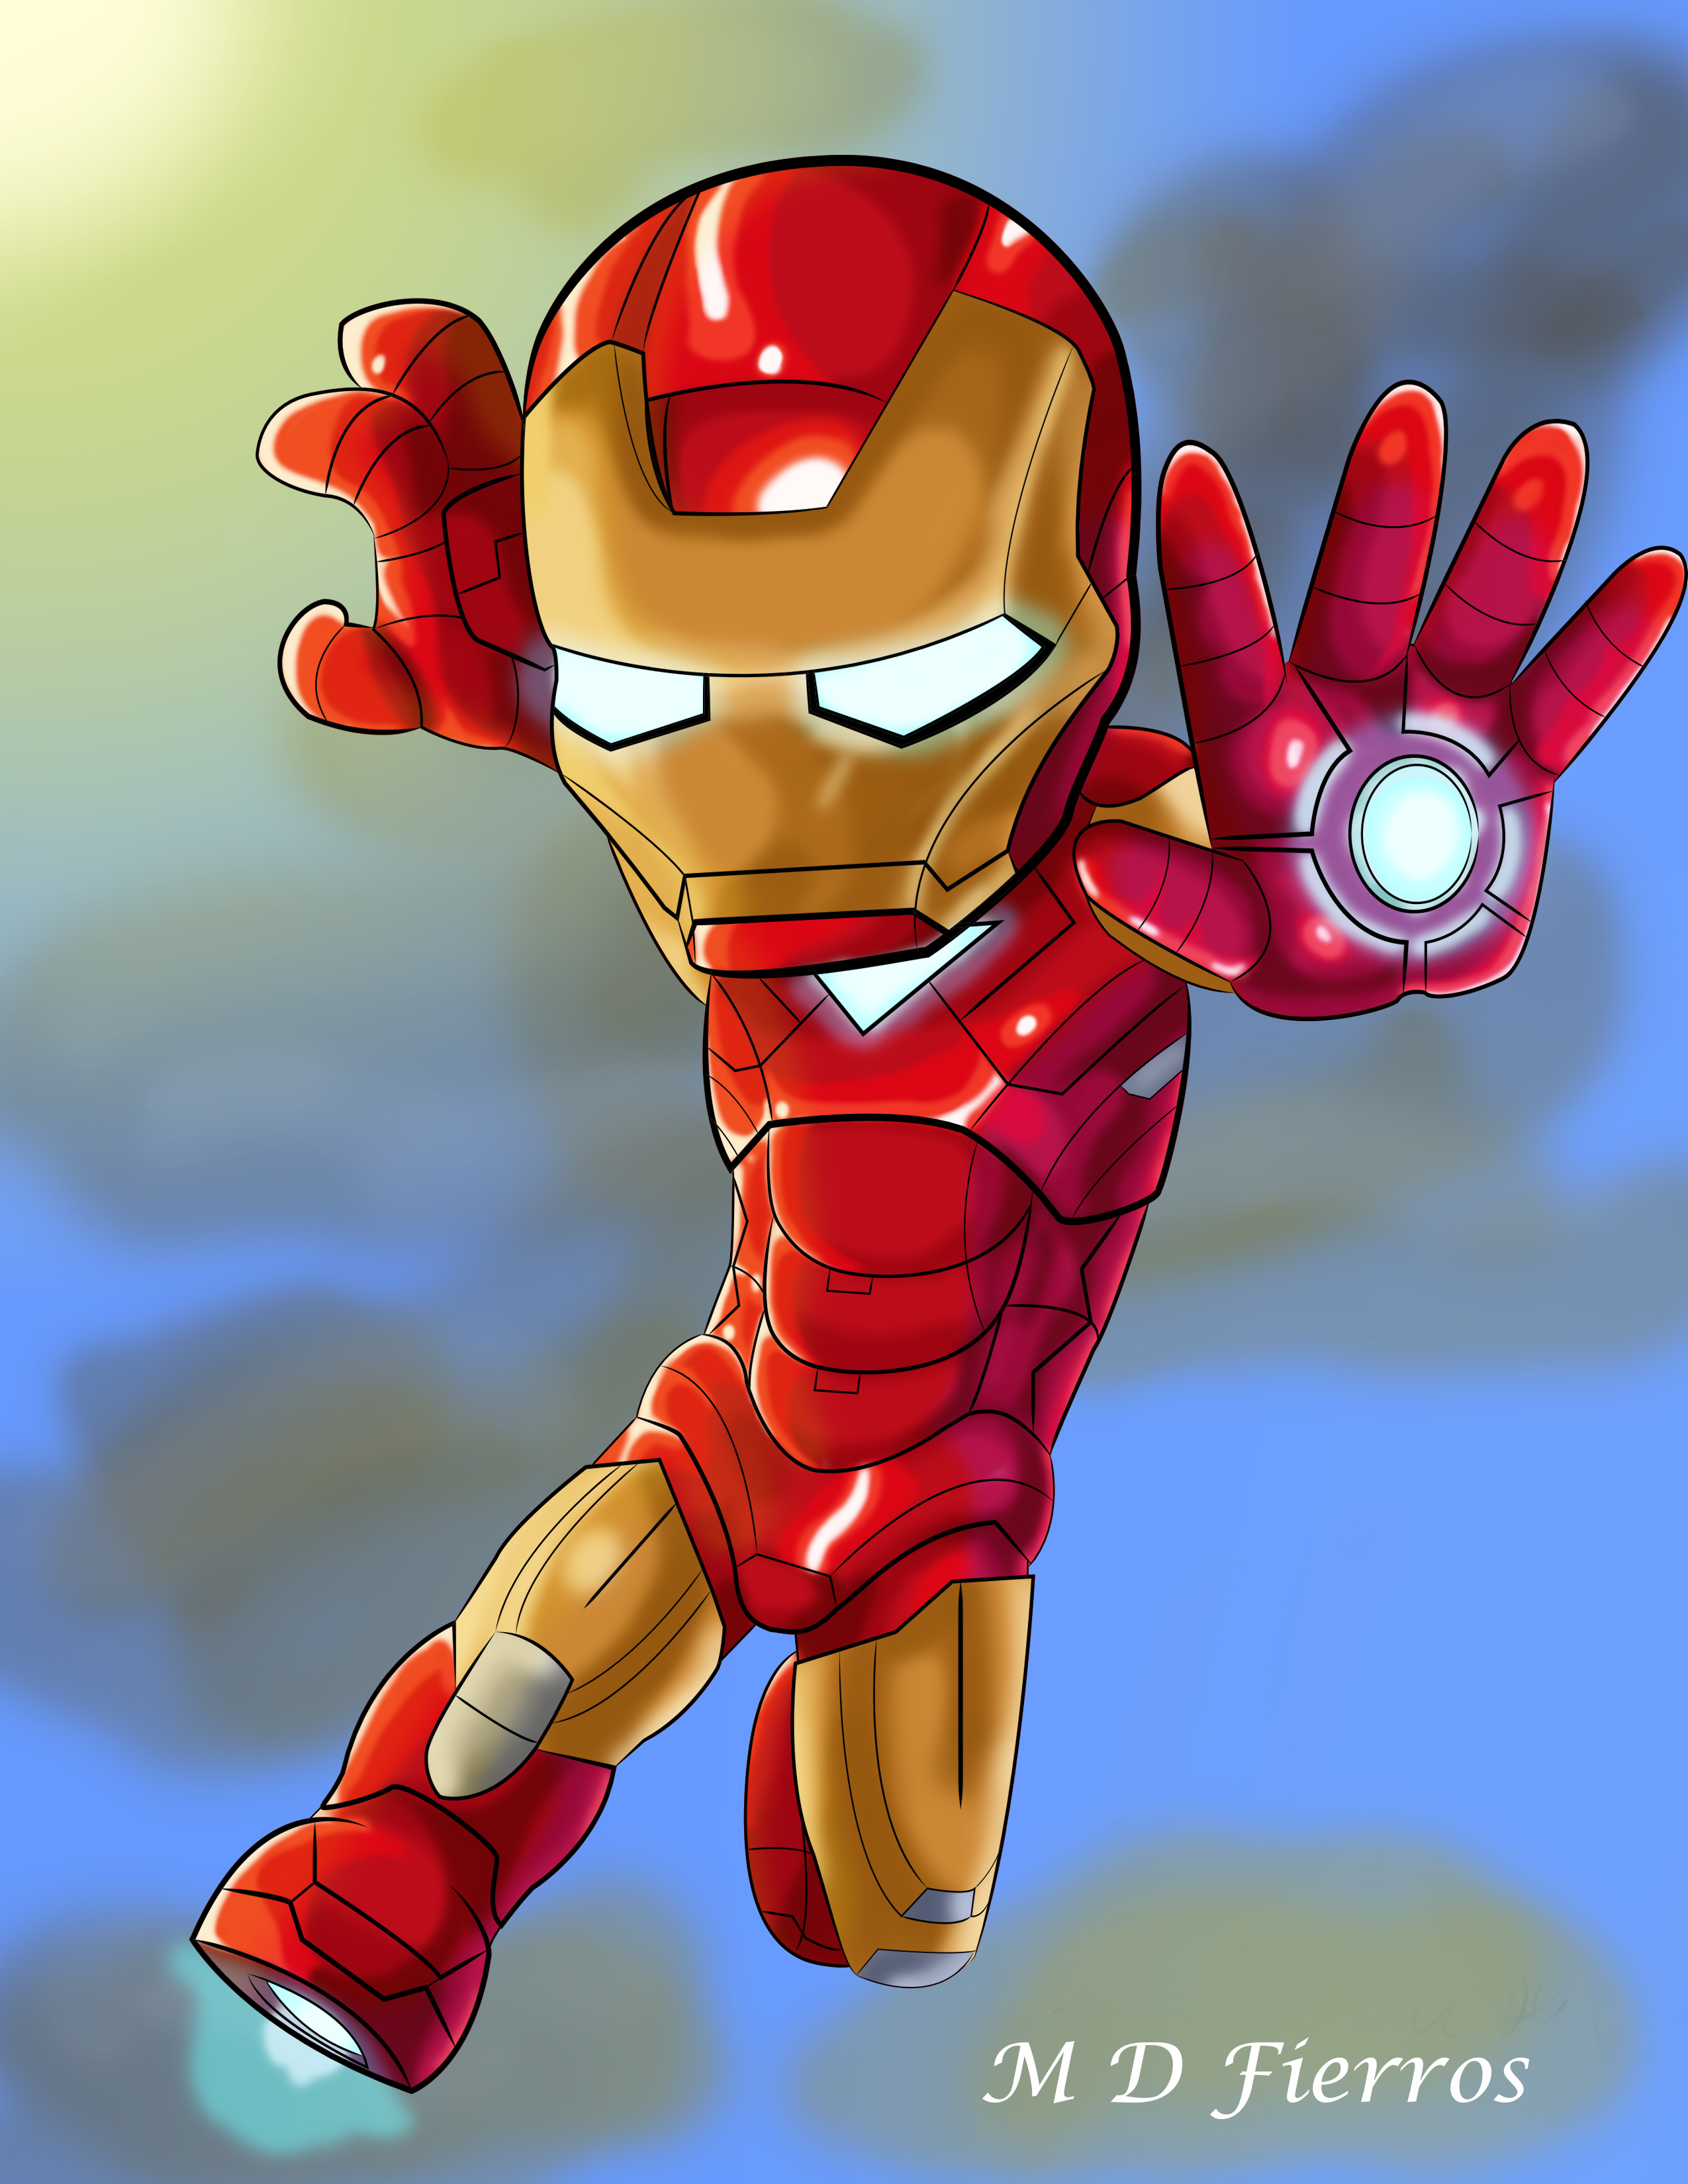 Chibi Iron man by Ironmatt1995 on DeviantArt